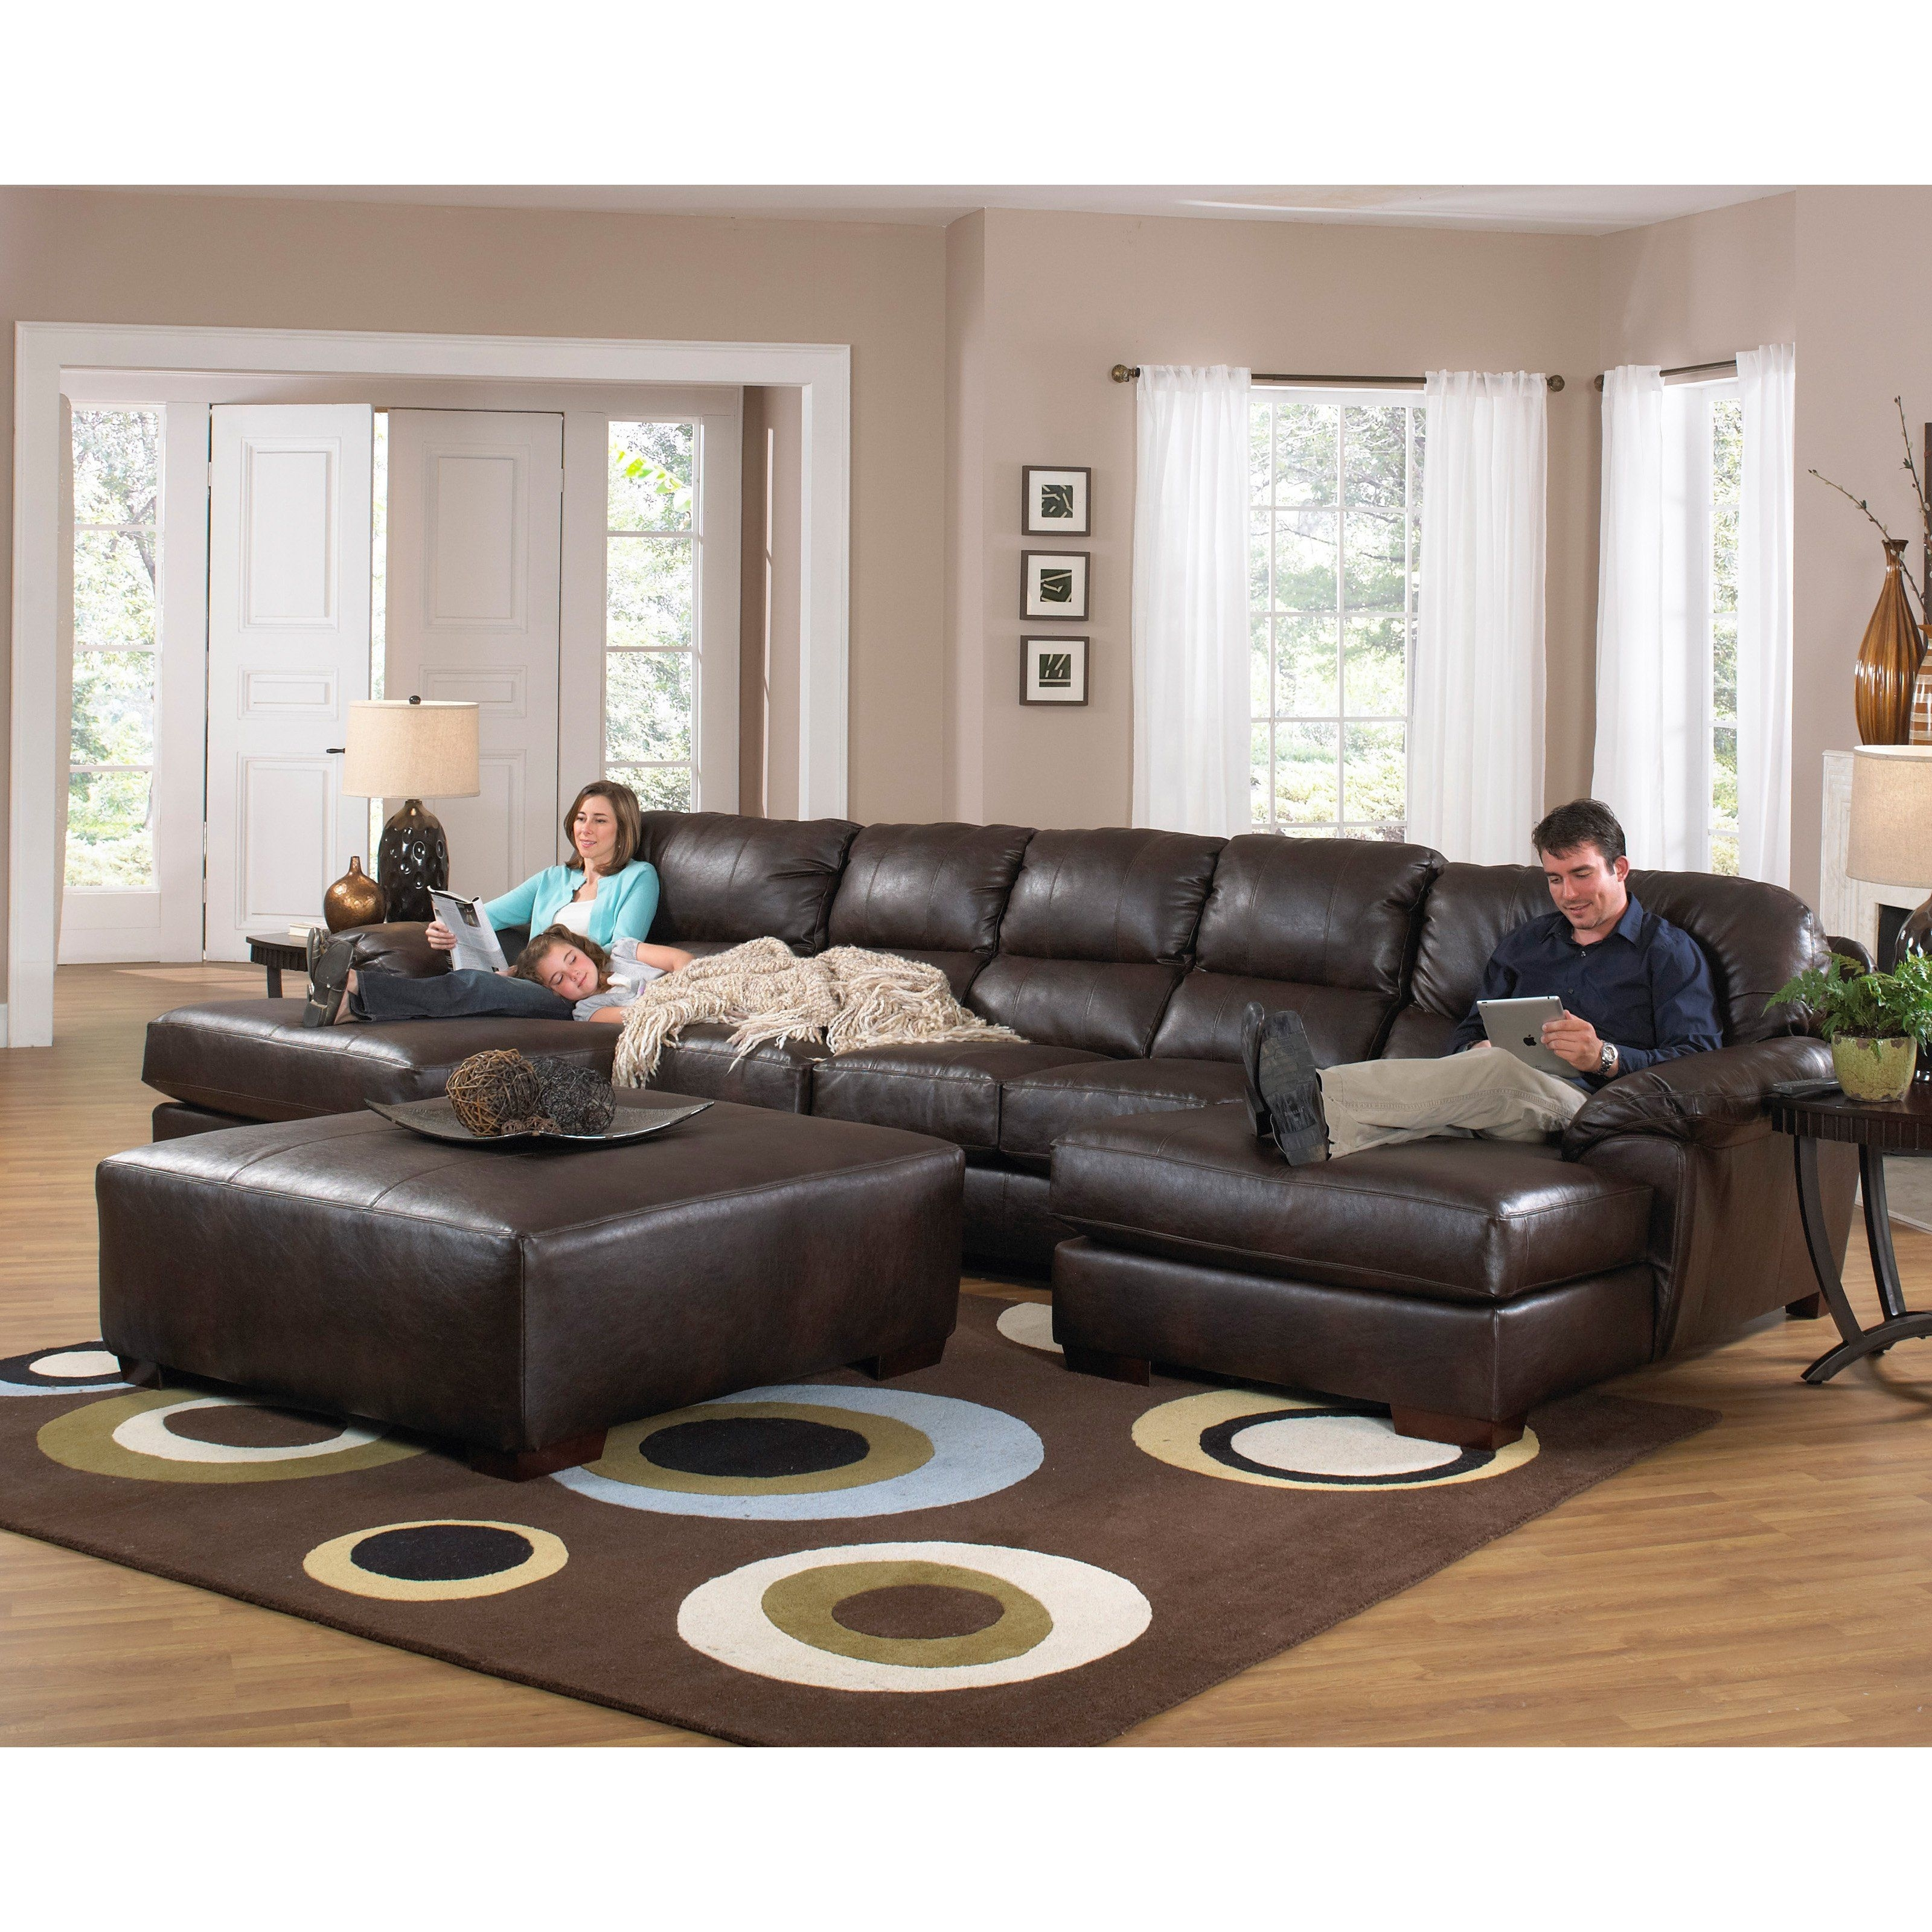 Jackson Furniture Lawson Sectional - Jac494 | Products | Pinterest intended for Jackson 6 Piece Power Reclining Sectionals With  Sleeper (Image 10 of 30)